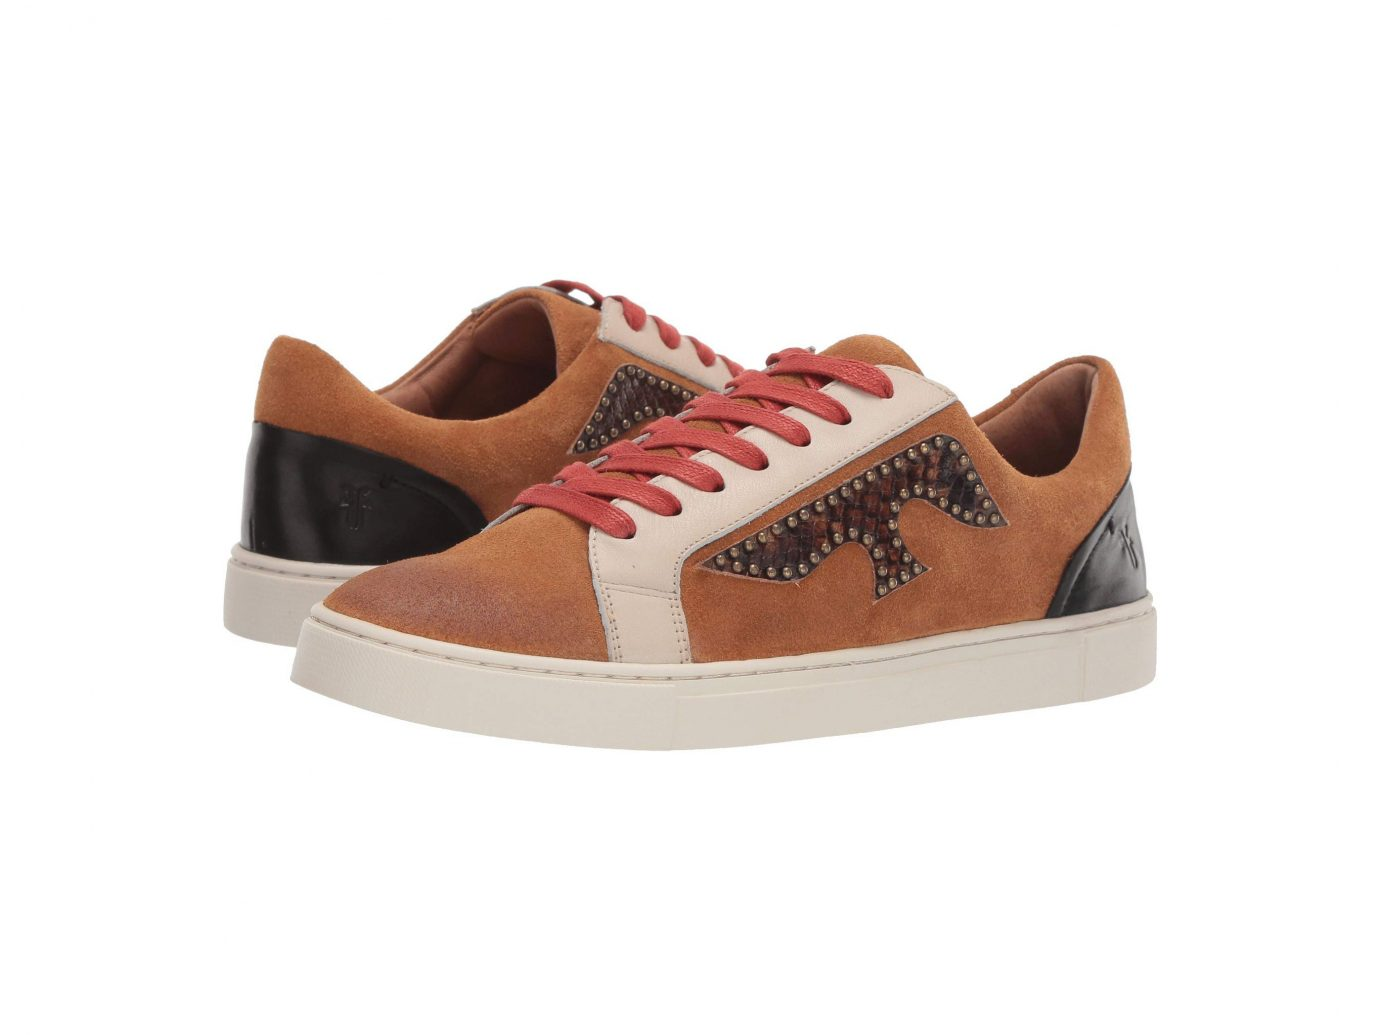 Frye Ivy Logo Patch Low Sneakers